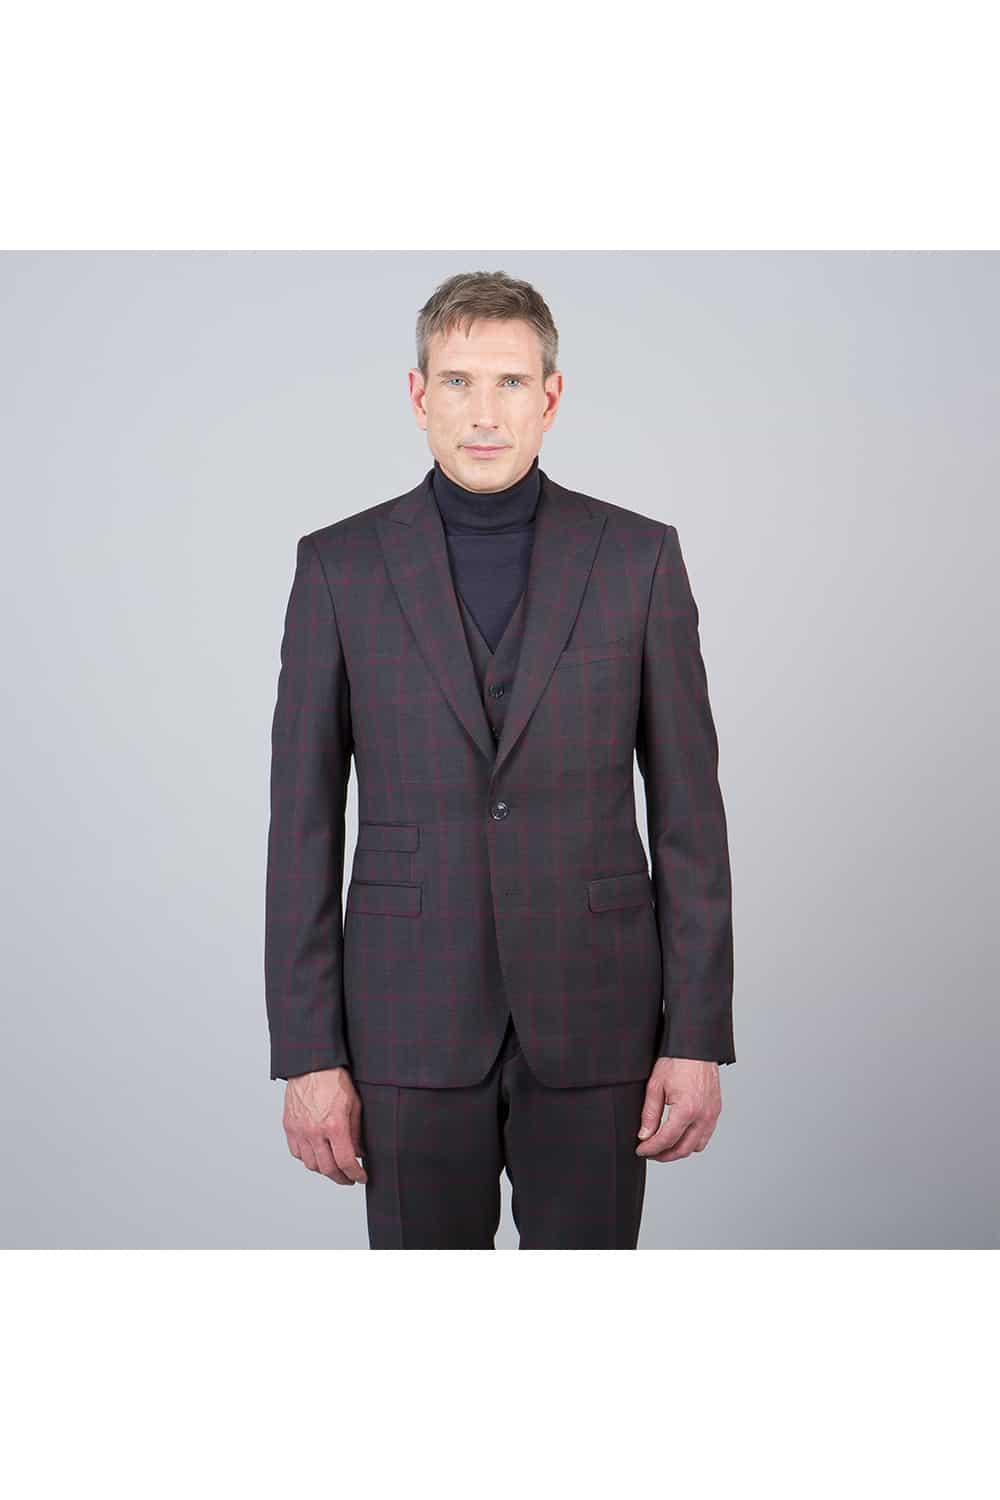 homme veste costume carreaux 3p paris